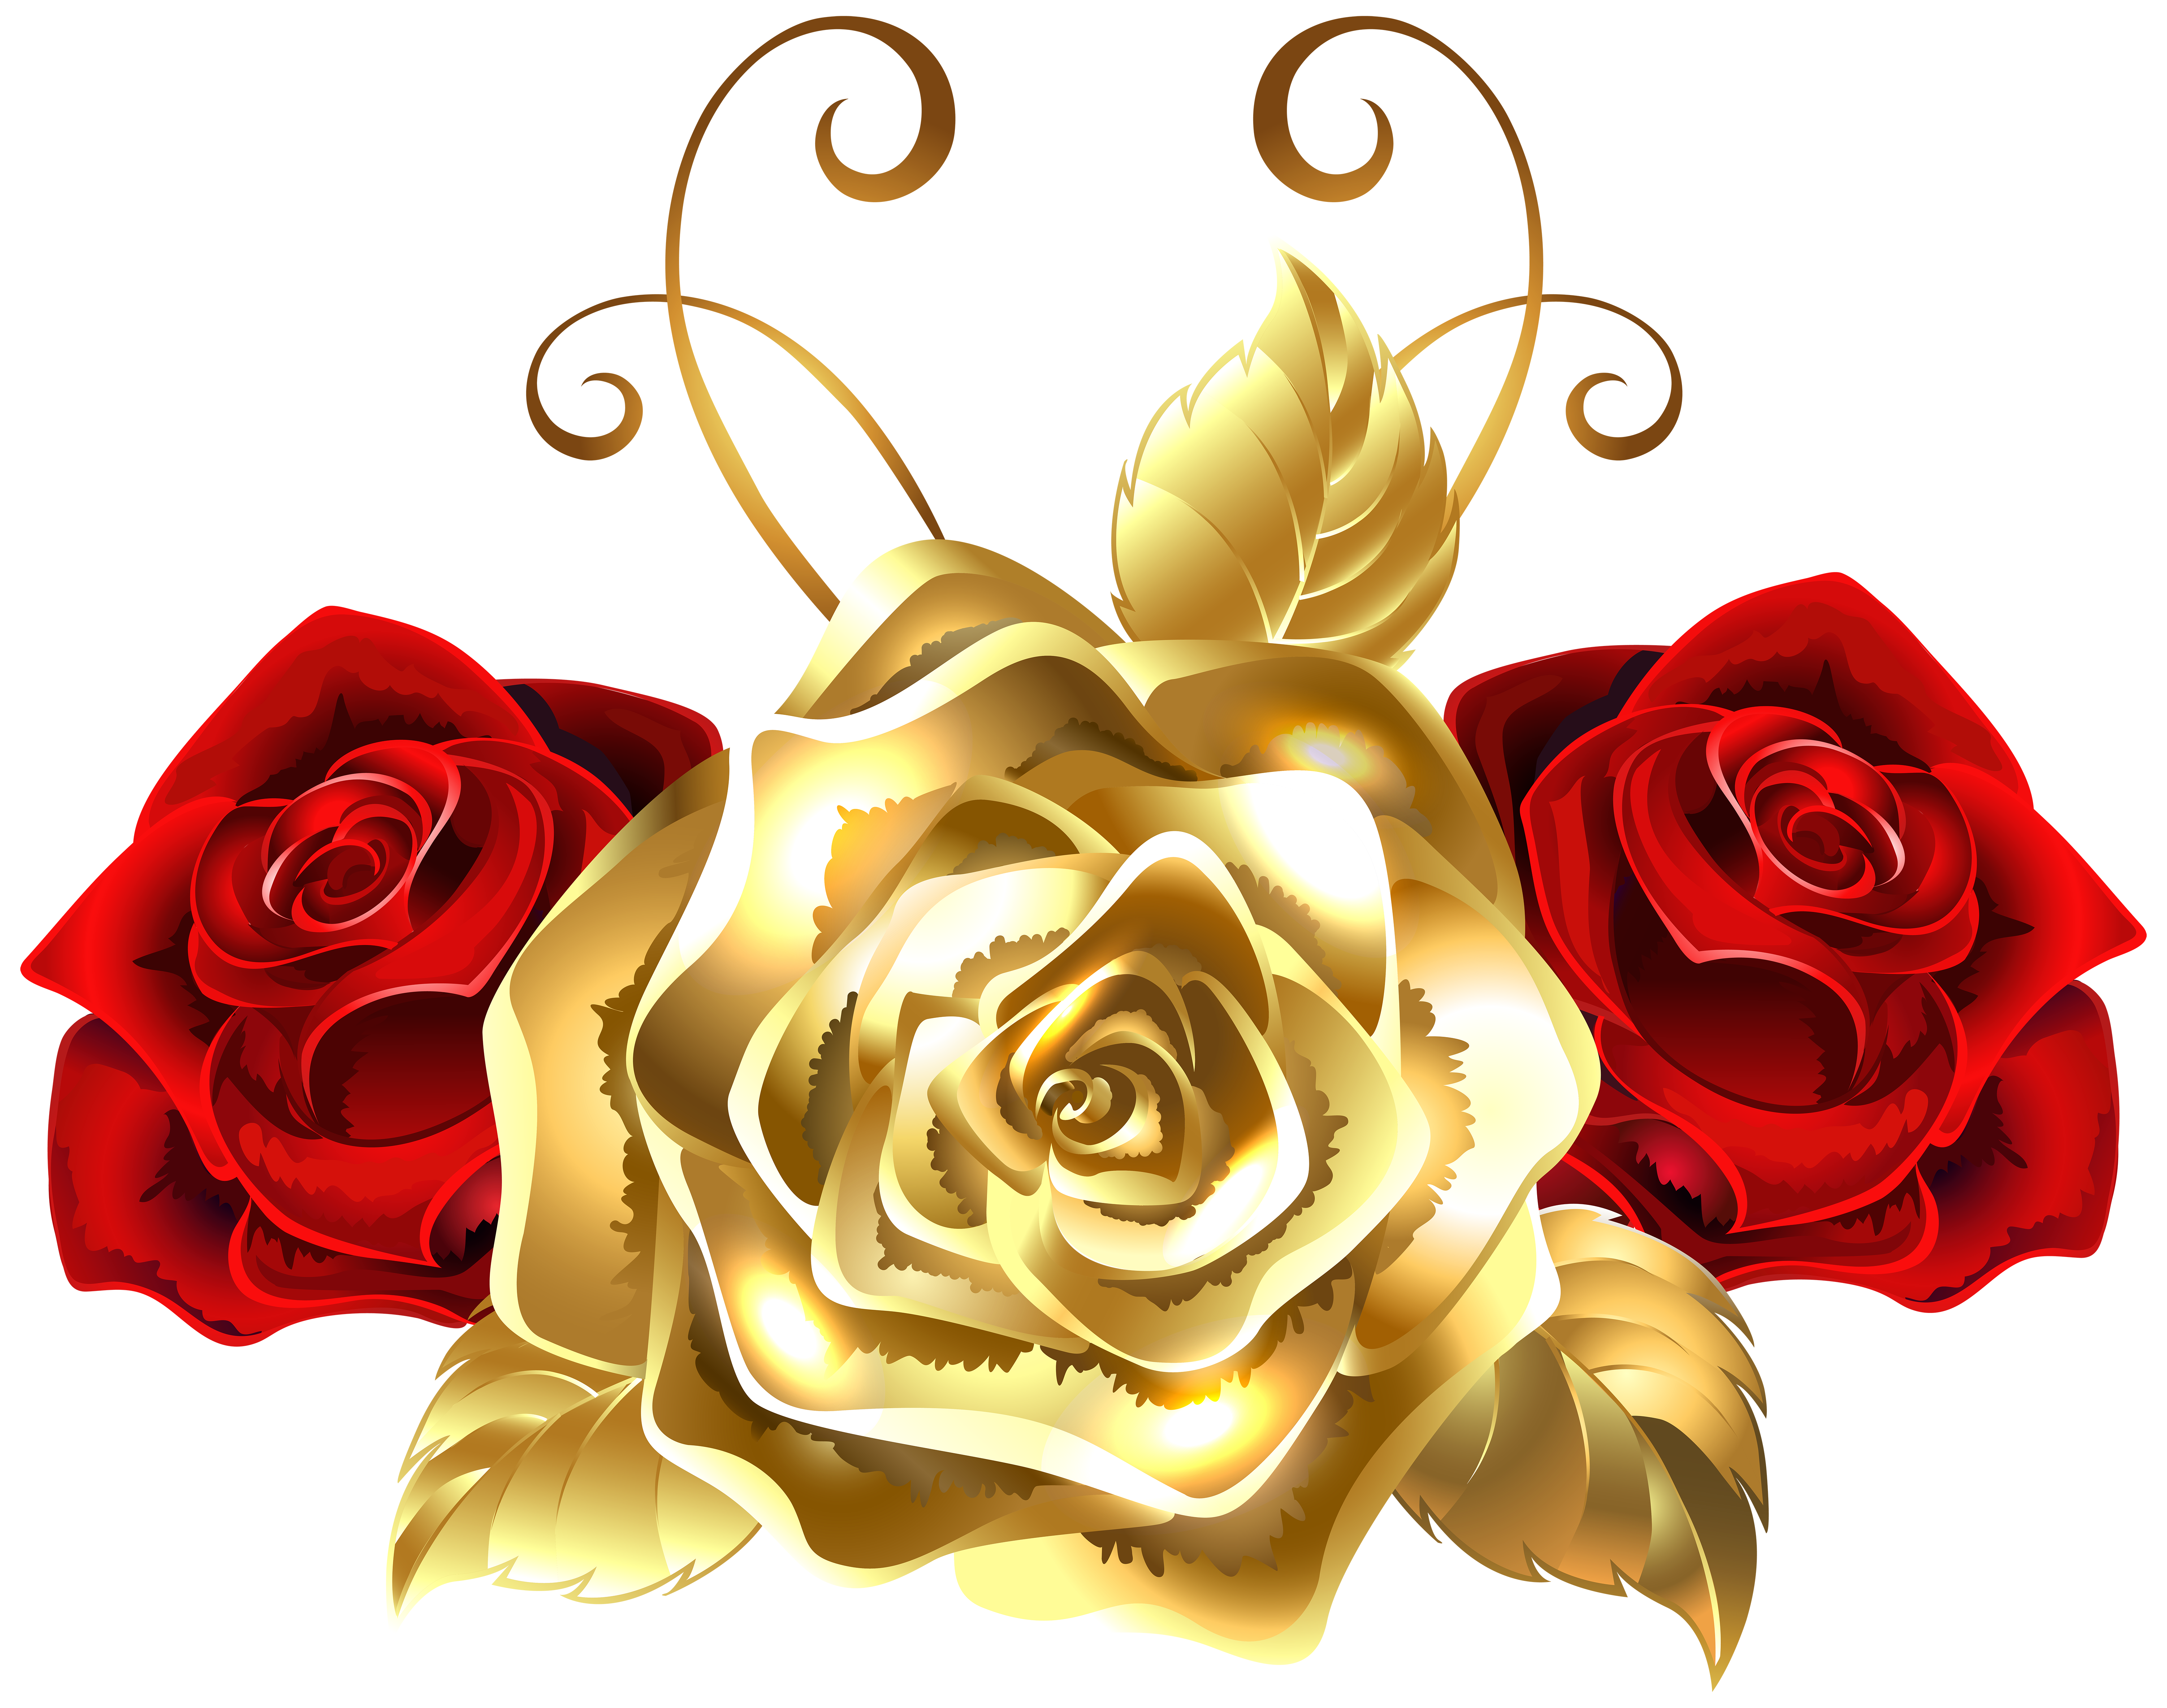 Free Gold Roses Cliparts, Download Free Clip Art, Free Clip.